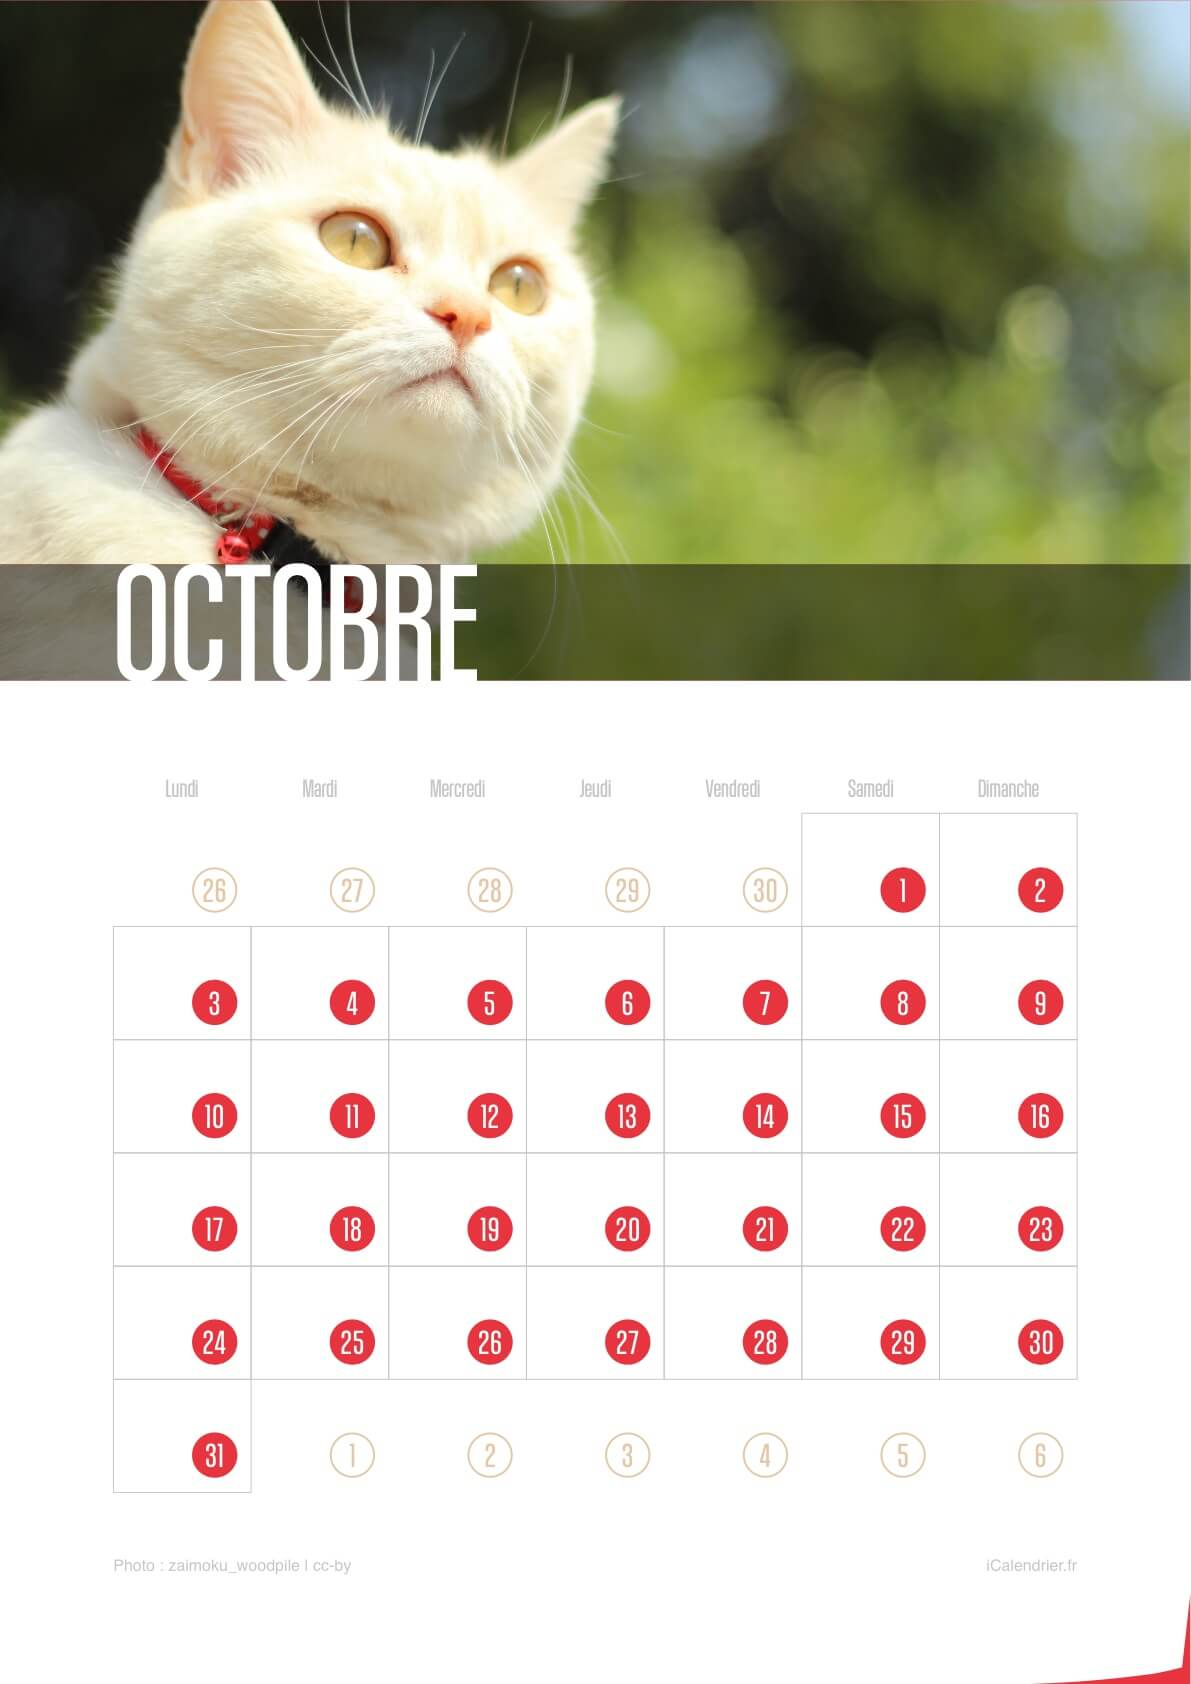 Calendriers chats de chatons 2016 icalendrier - Chat a imprimer ...